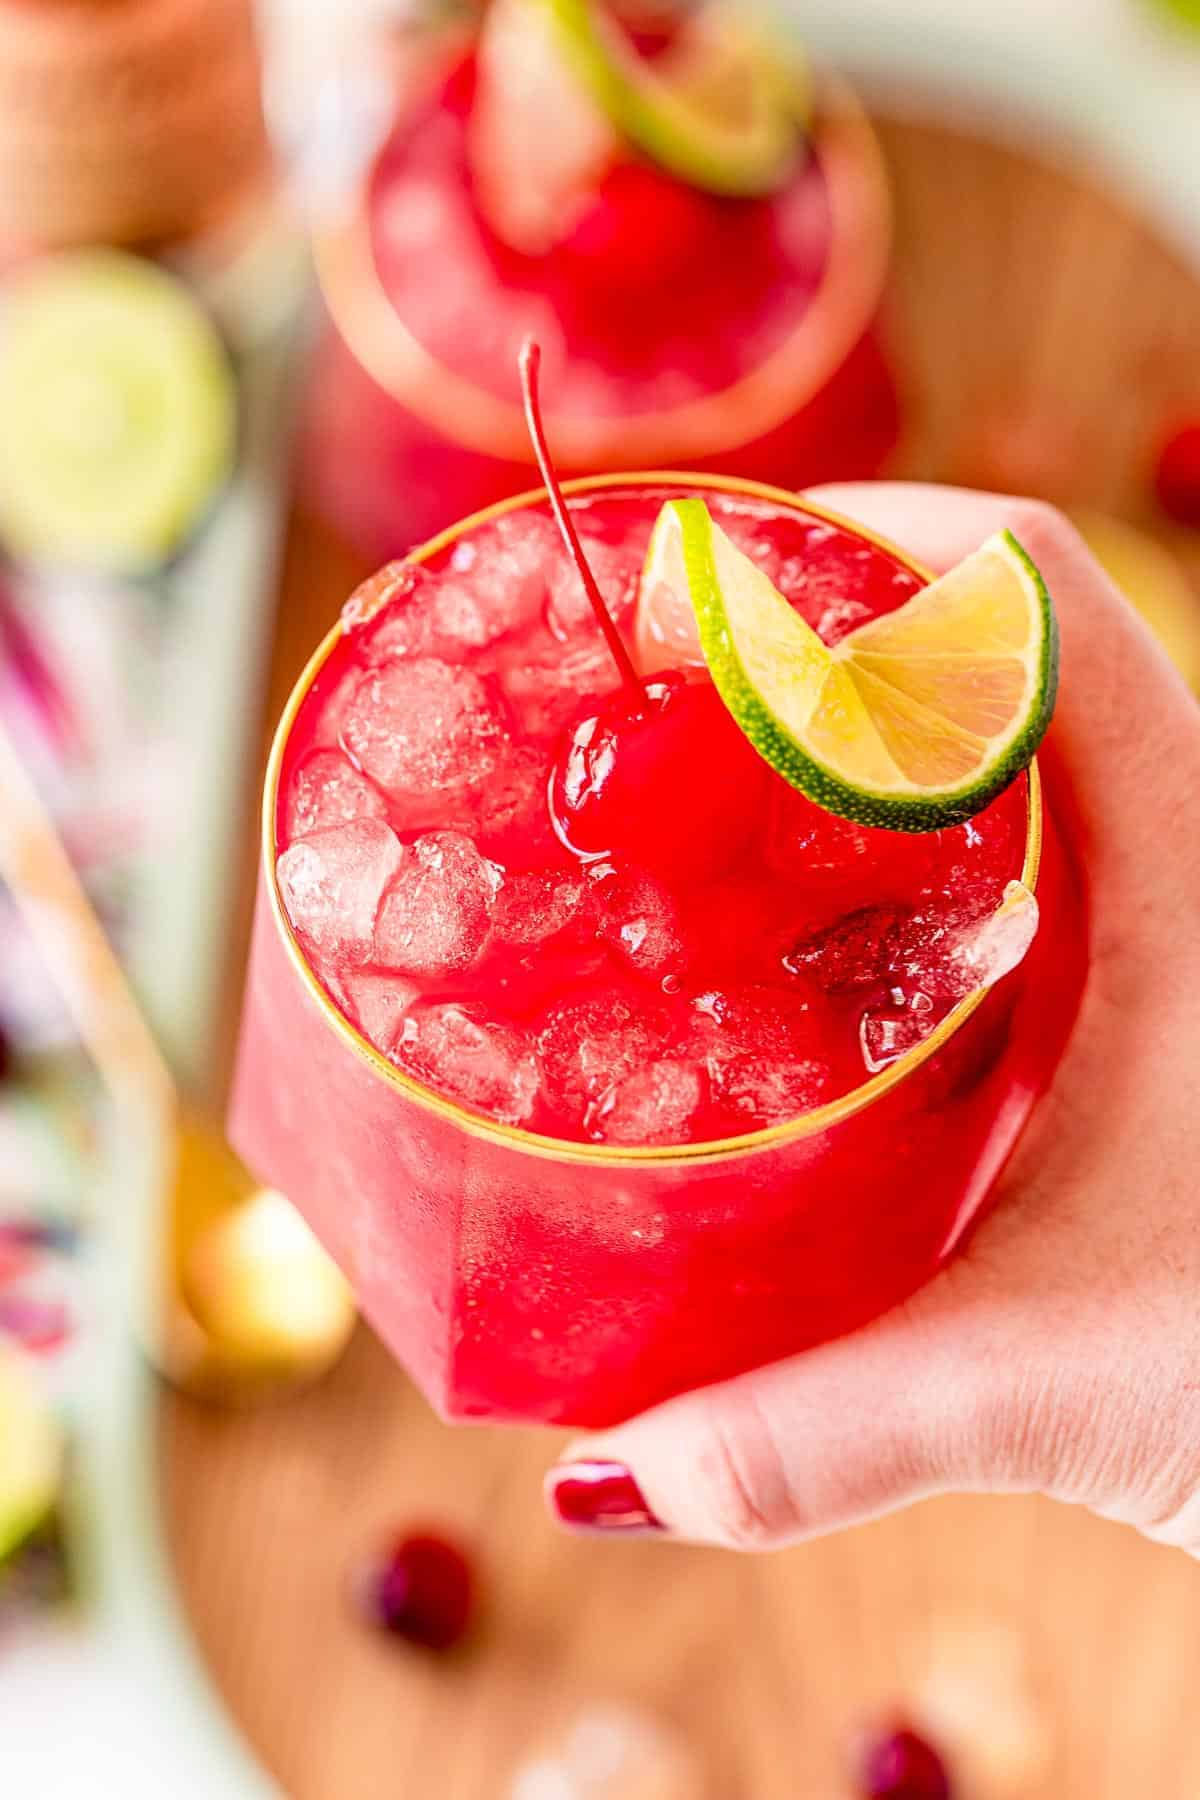 bright red cocktail in a person's hand.